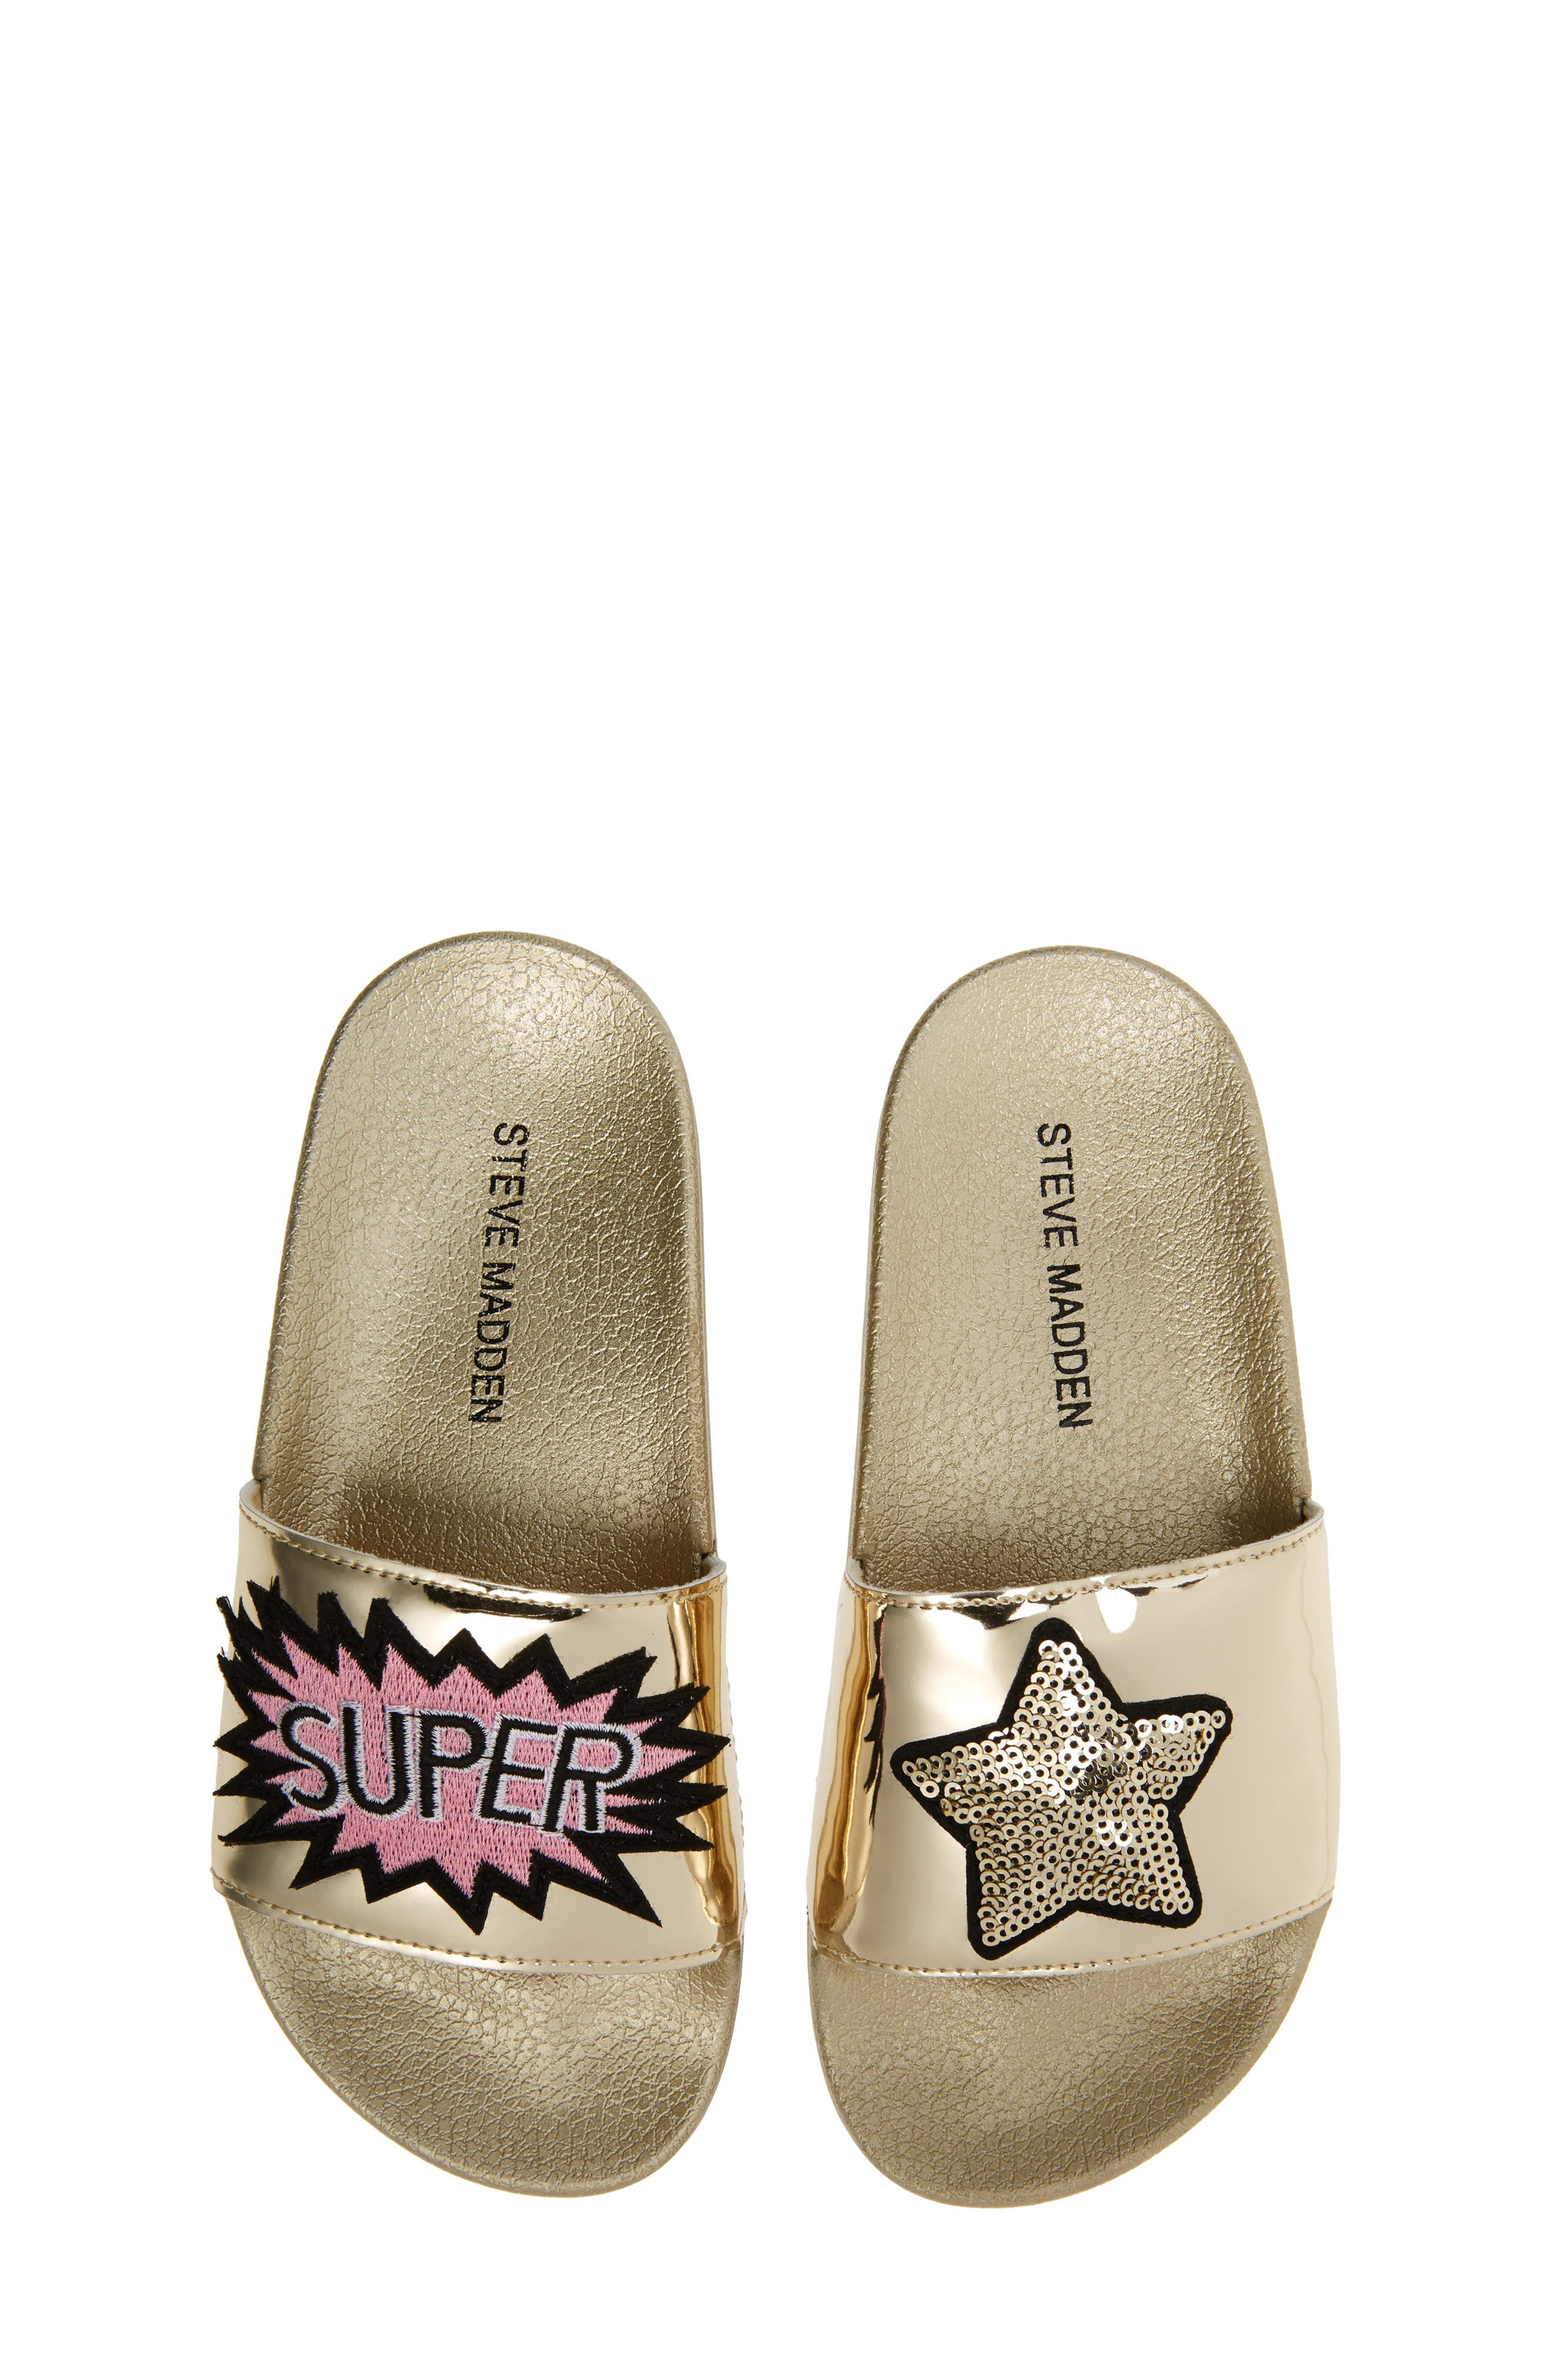 Steve Madden Jgrltalk Appliqué Slide Sandal (Little Kid & Big Kid)